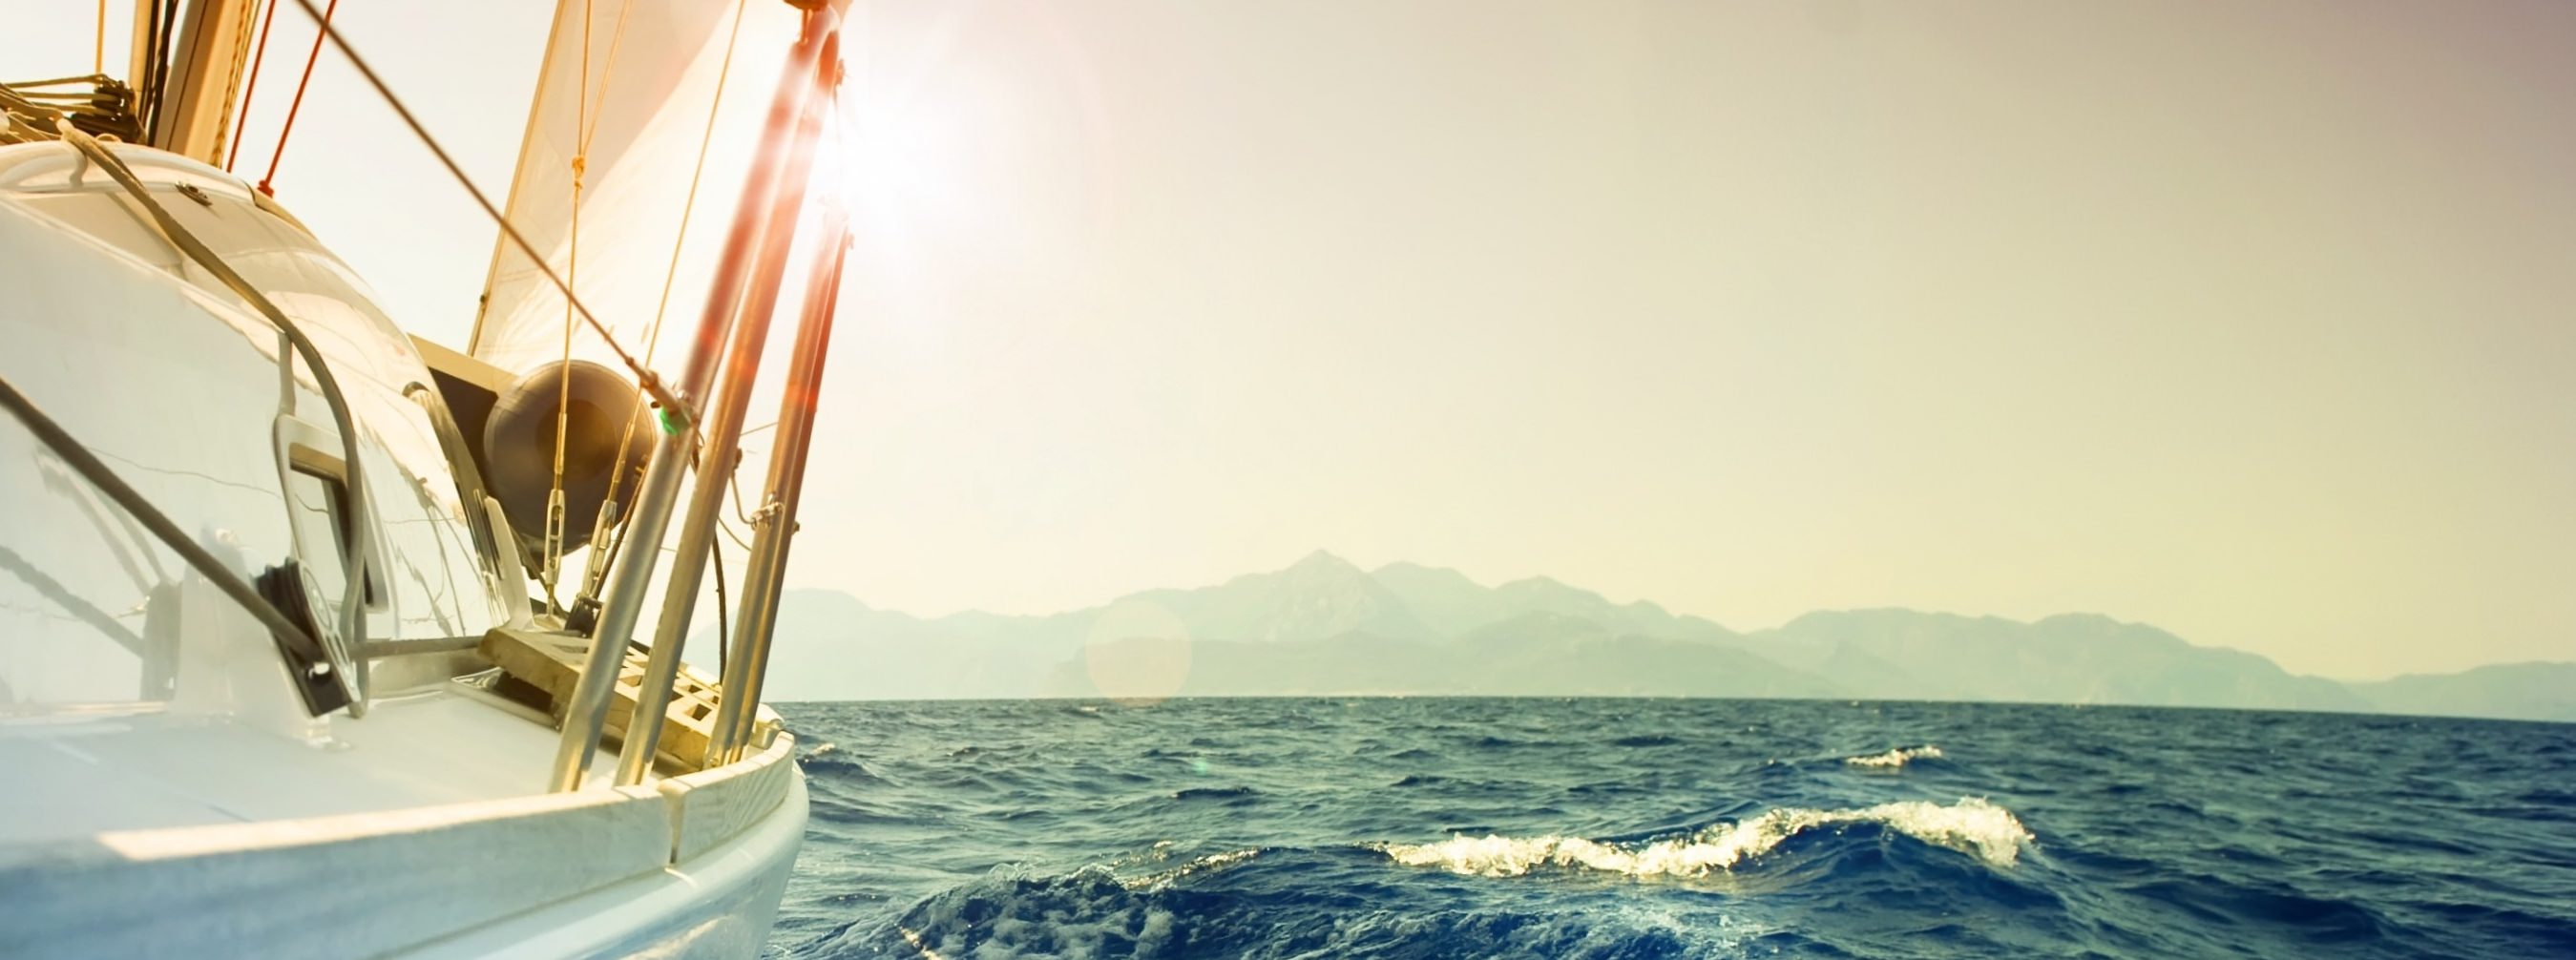 boat-background-1